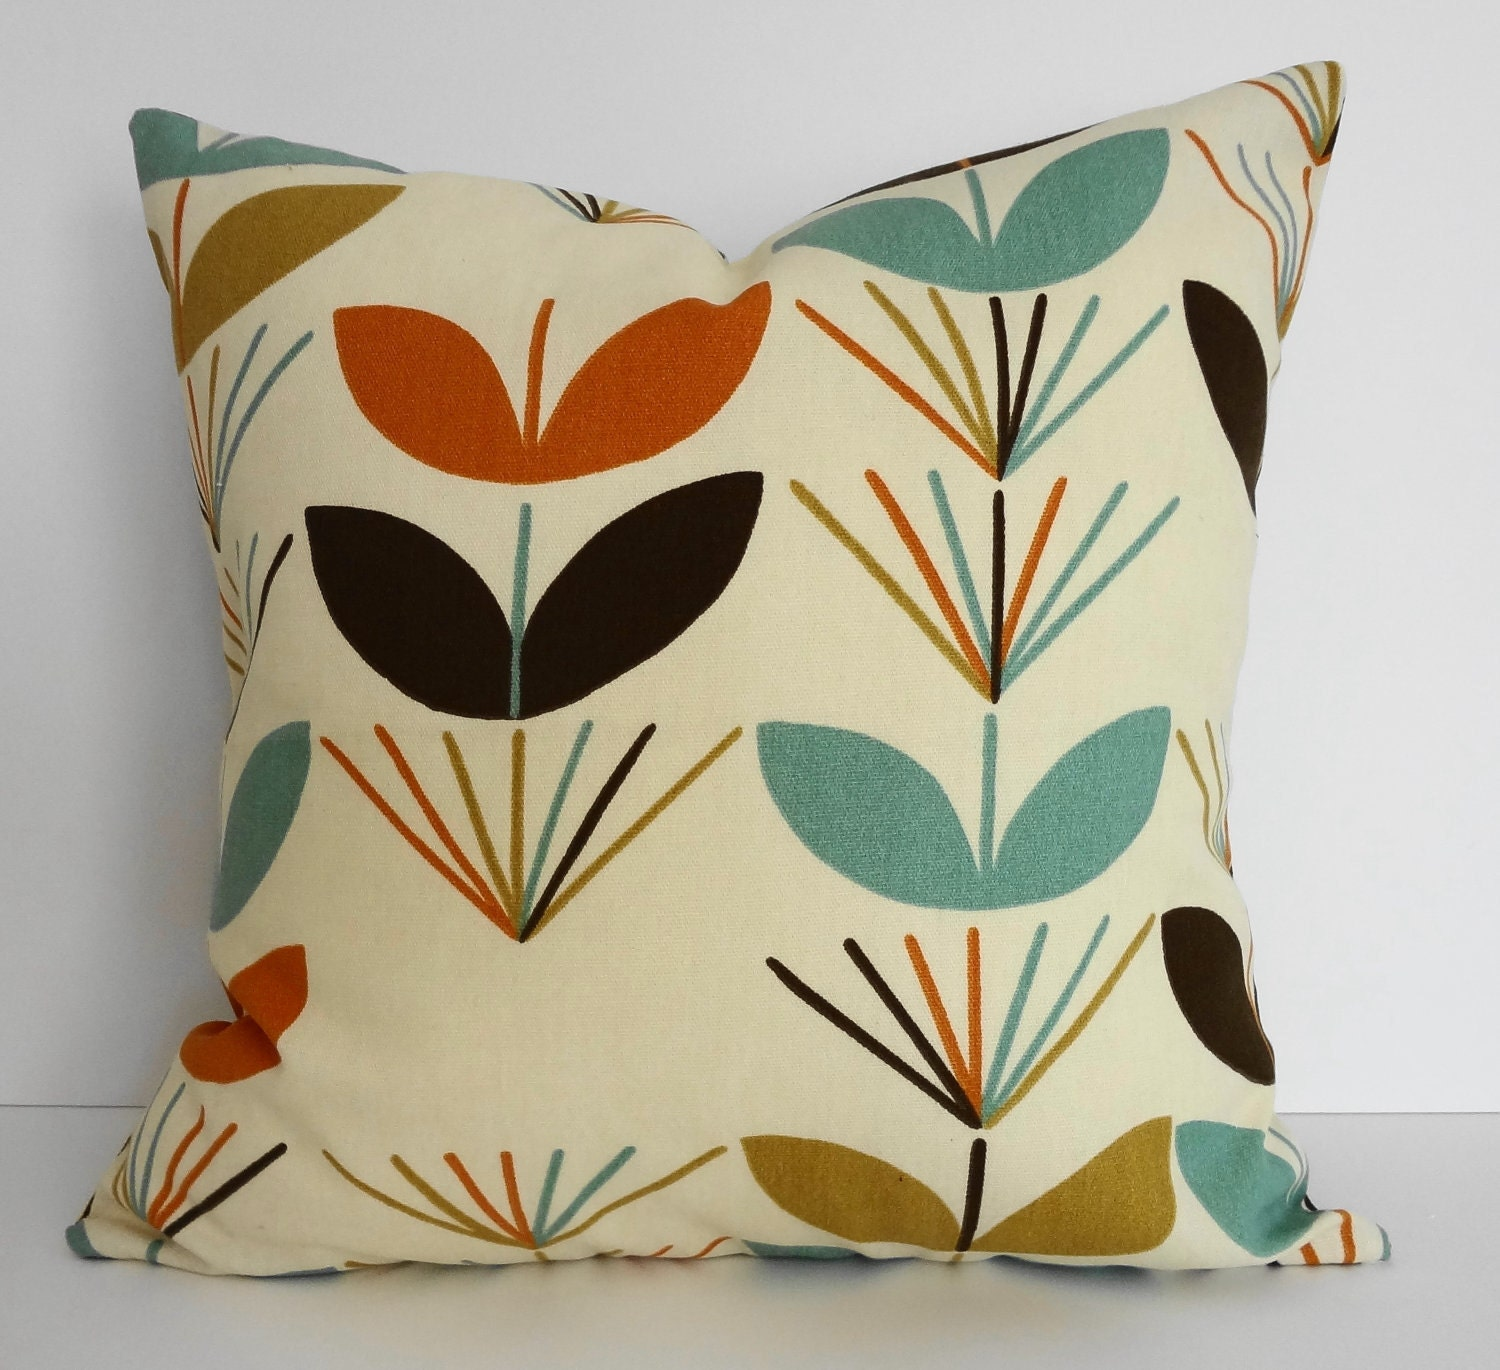 Cushion Colour Combinations: 1960s Retro Teal Brown Orange Gold Mod Decorative Pillow